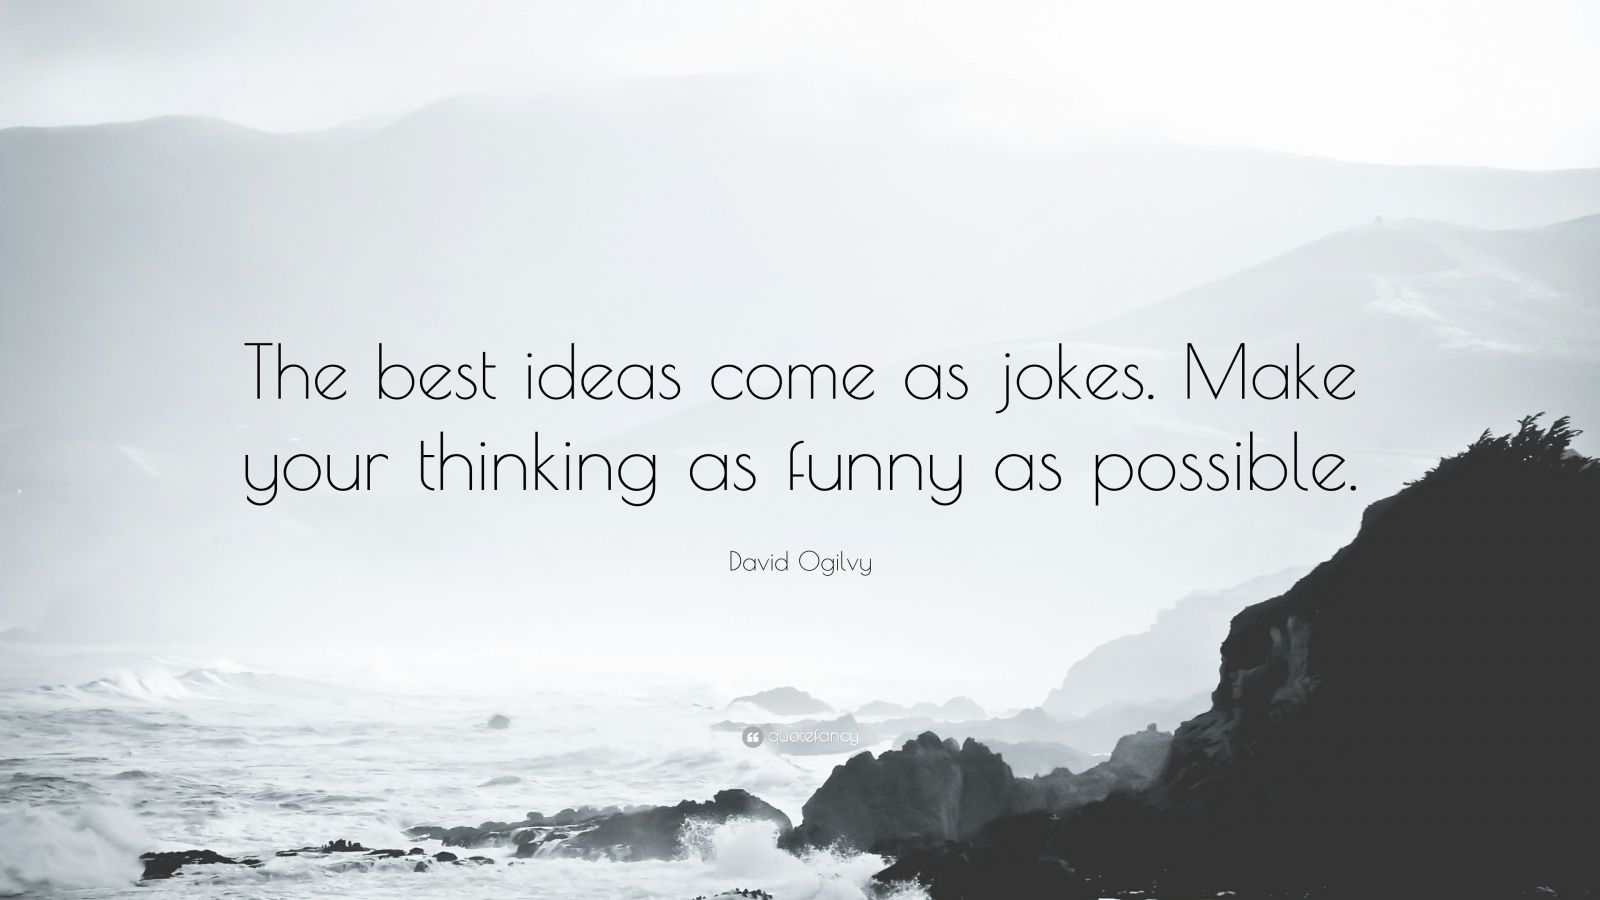 David Ogilvy Quotes Classy David Ogilvy Quotes 100 Wallpapers  Quotefancy